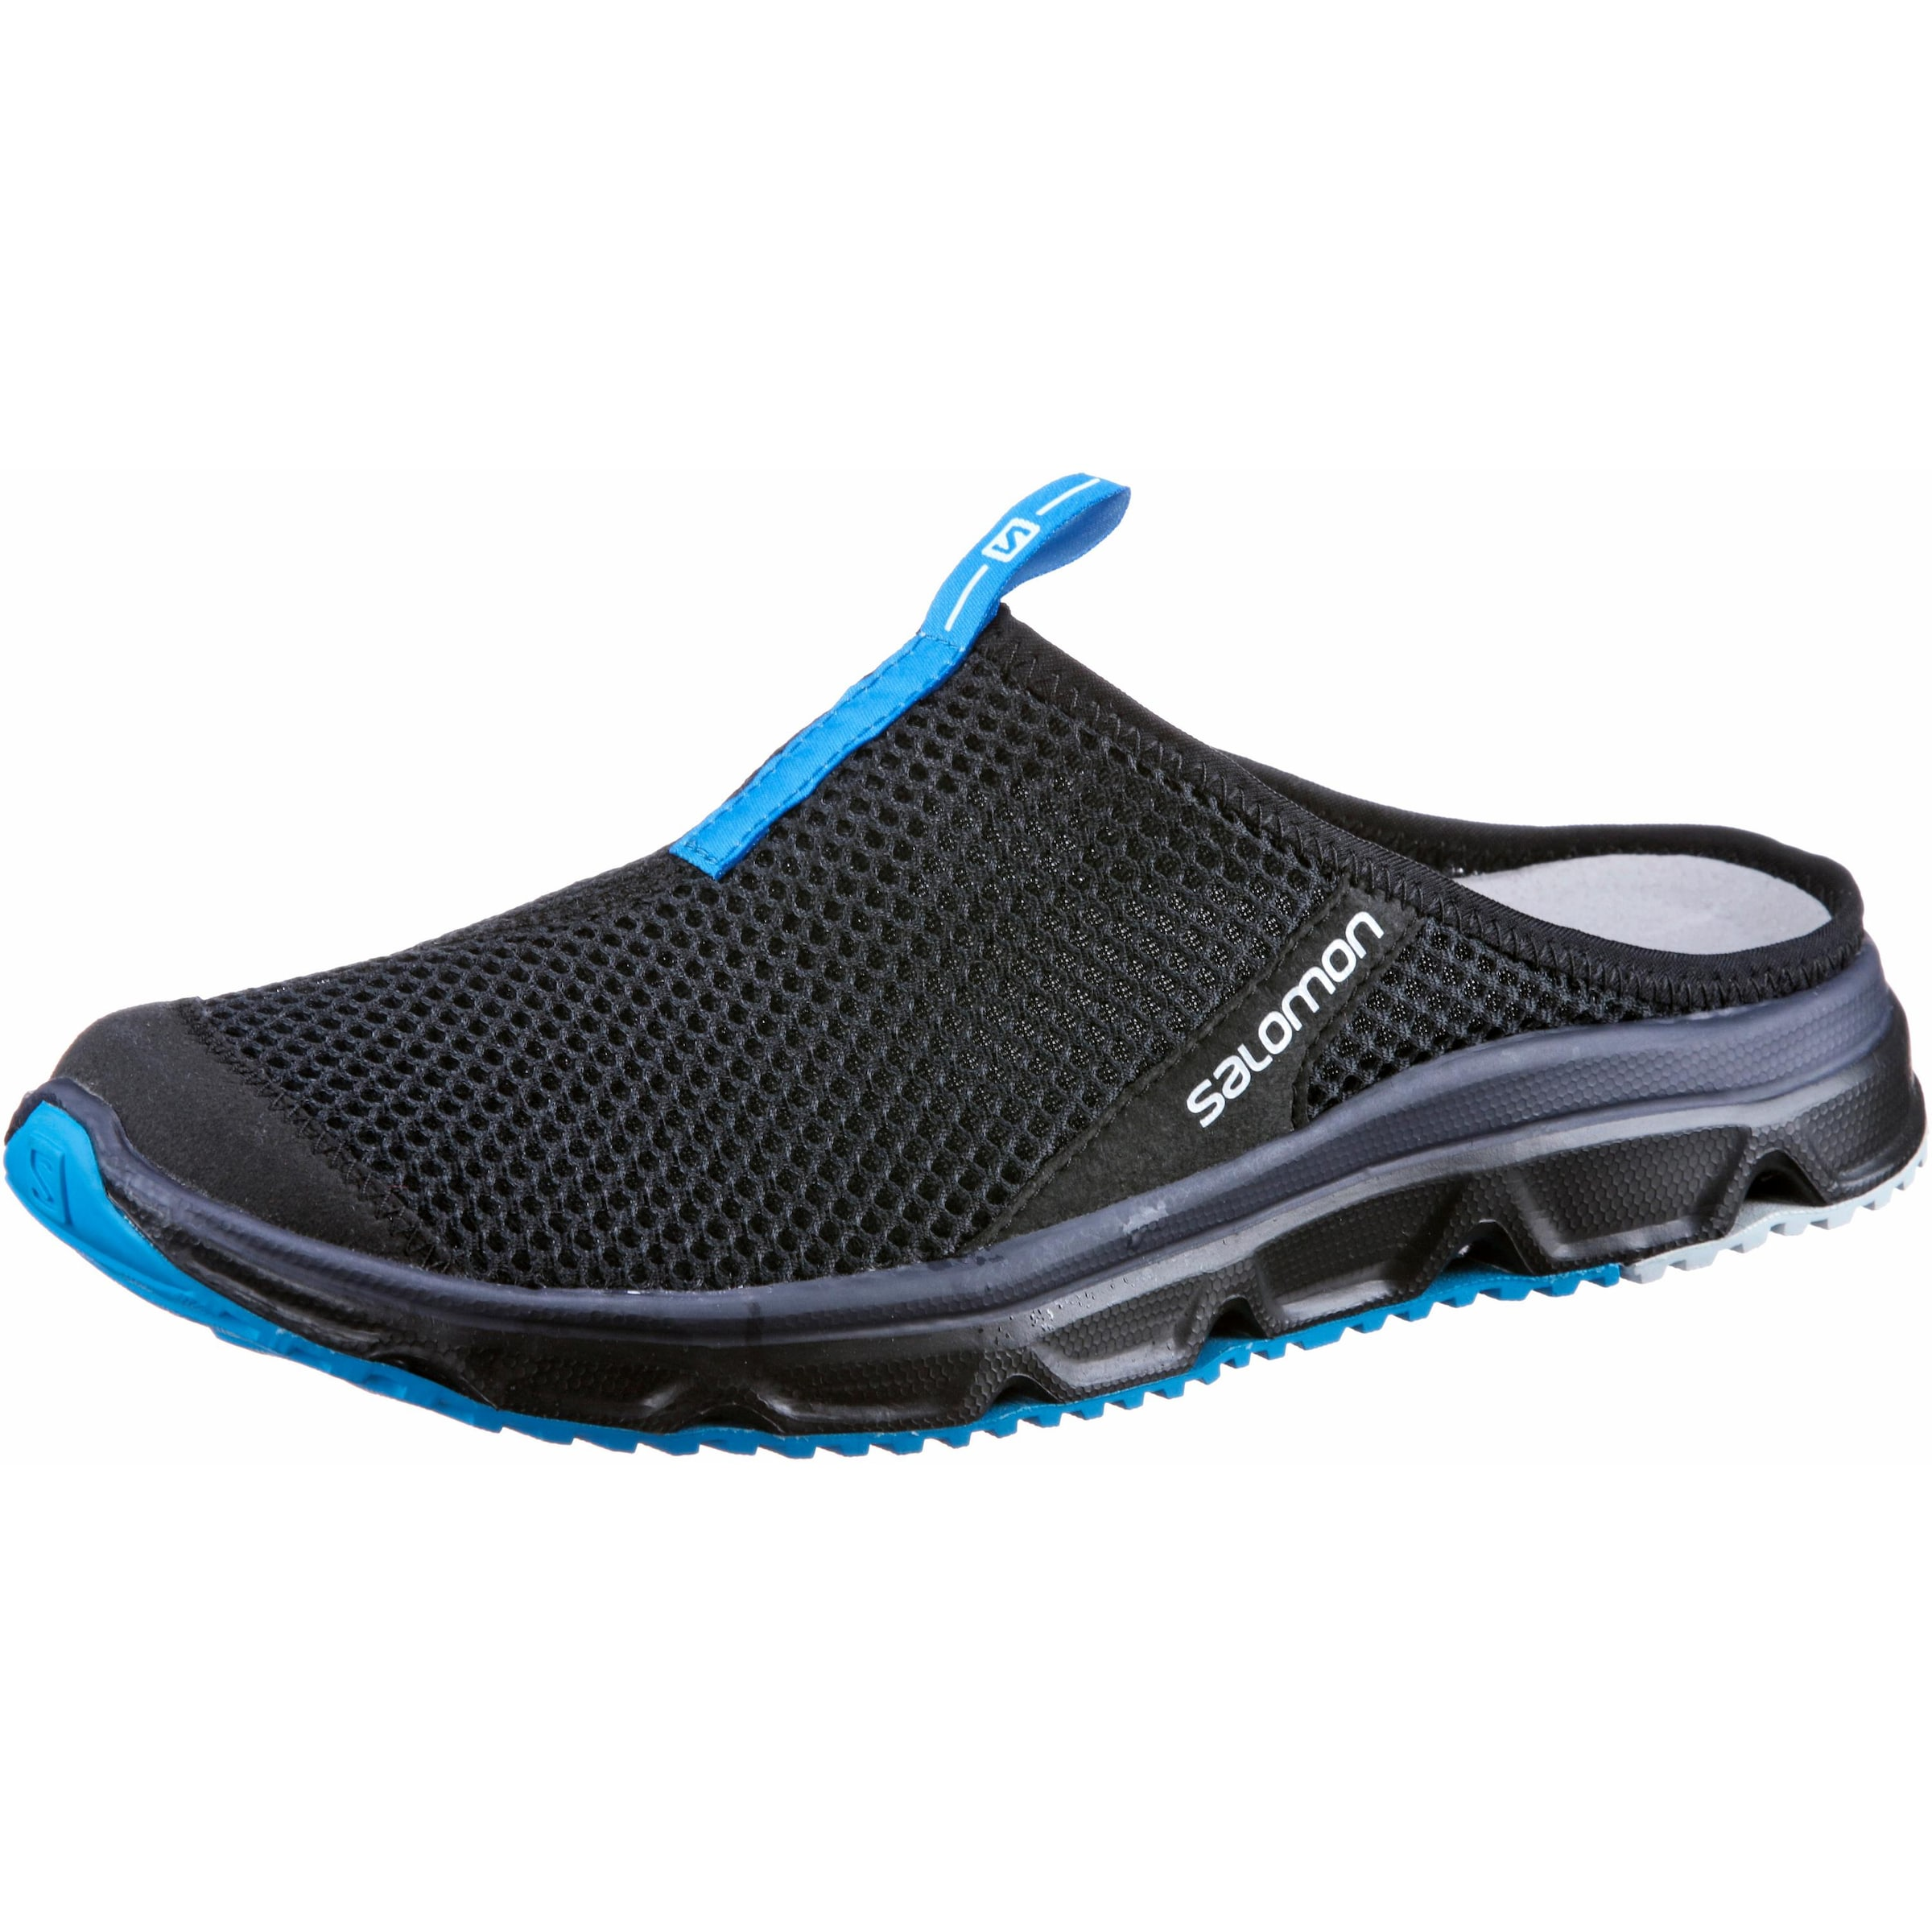 SALOMON Slipper  RX SLIDE 3.0